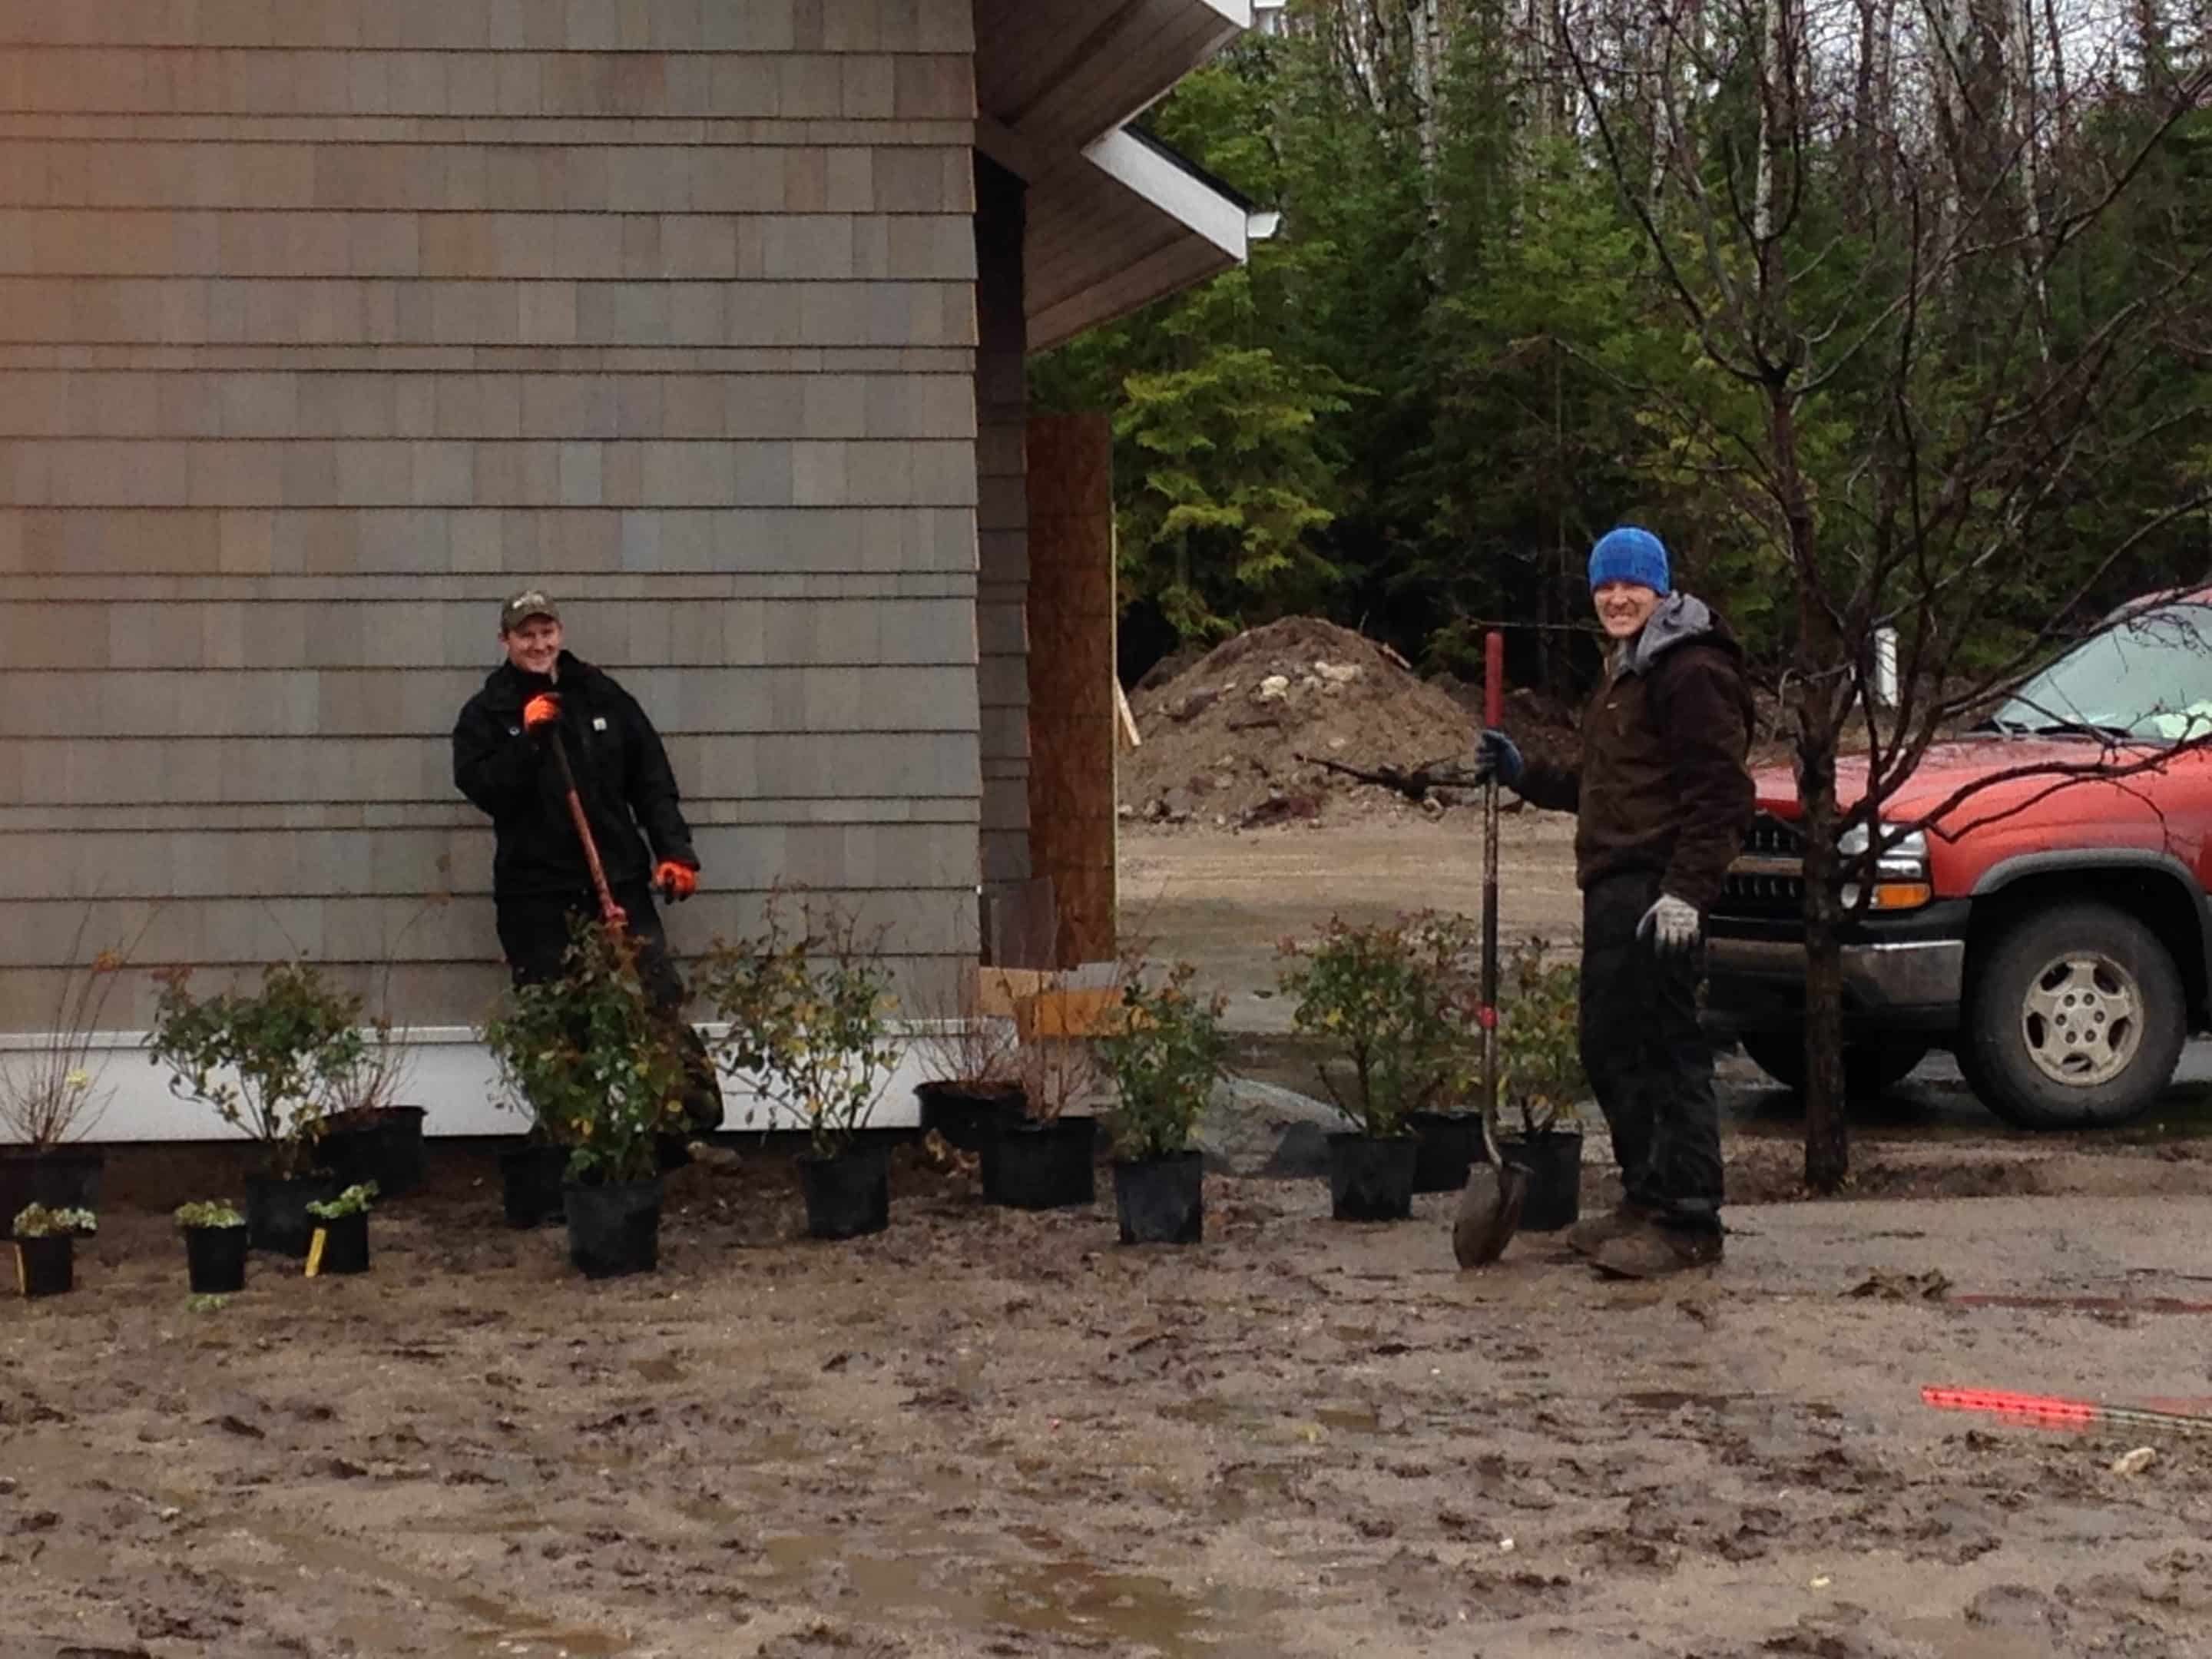 Drost Landscape works hard, rain or shine - cold and rainy here